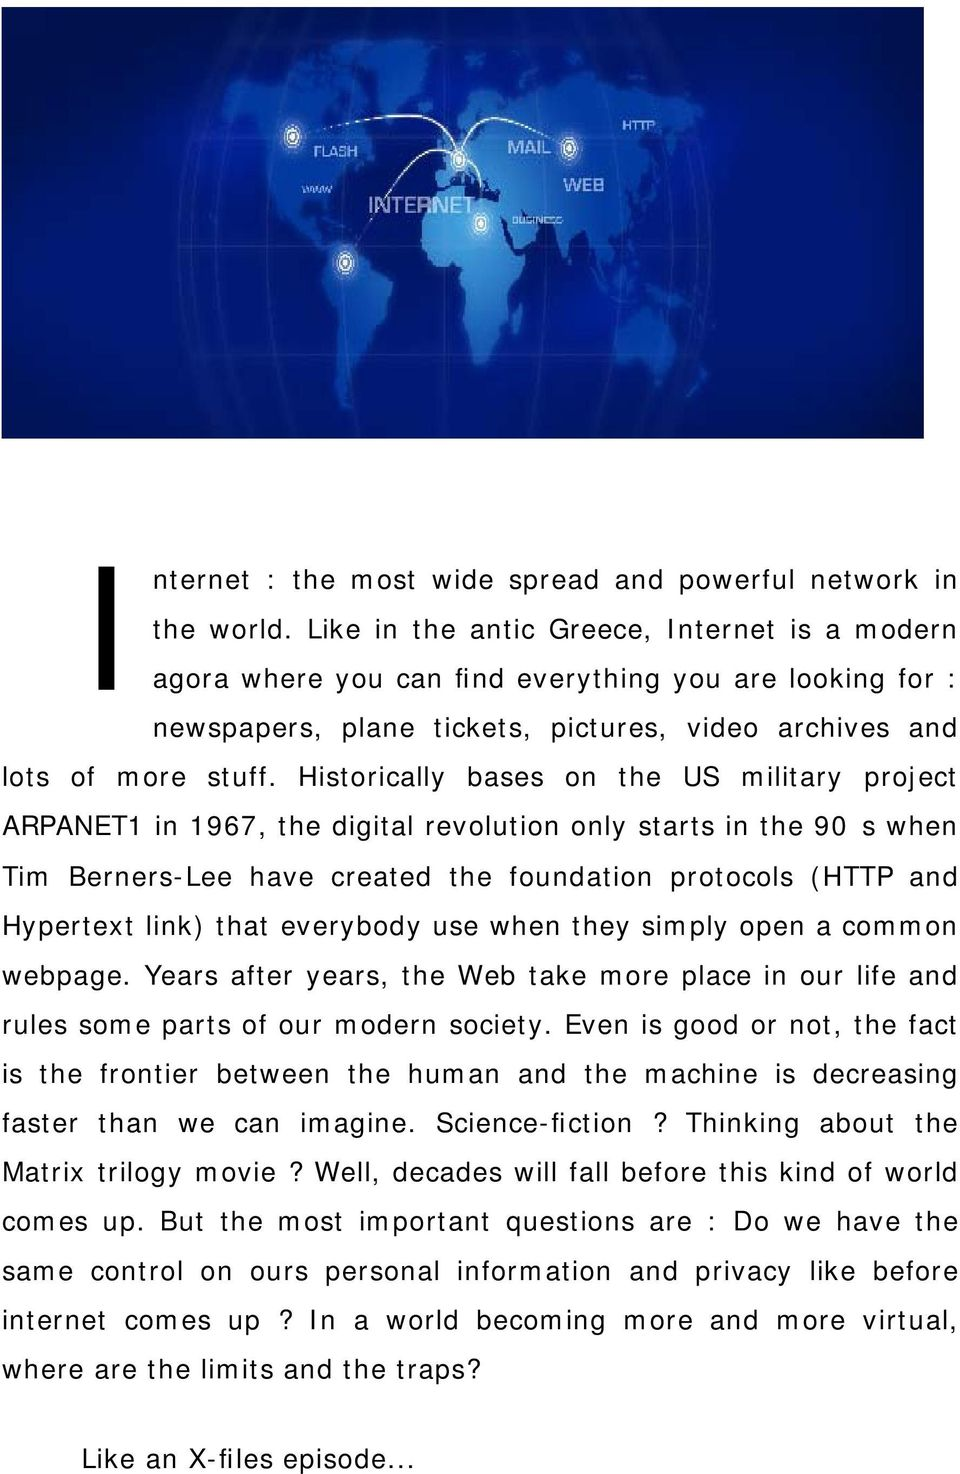 Historically bases on the US military project ARPANET1 in 1967, the digital revolution only starts in the 90s when Tim Berners-Lee have created the foundation protocols (HTTP and Hypertext link) that